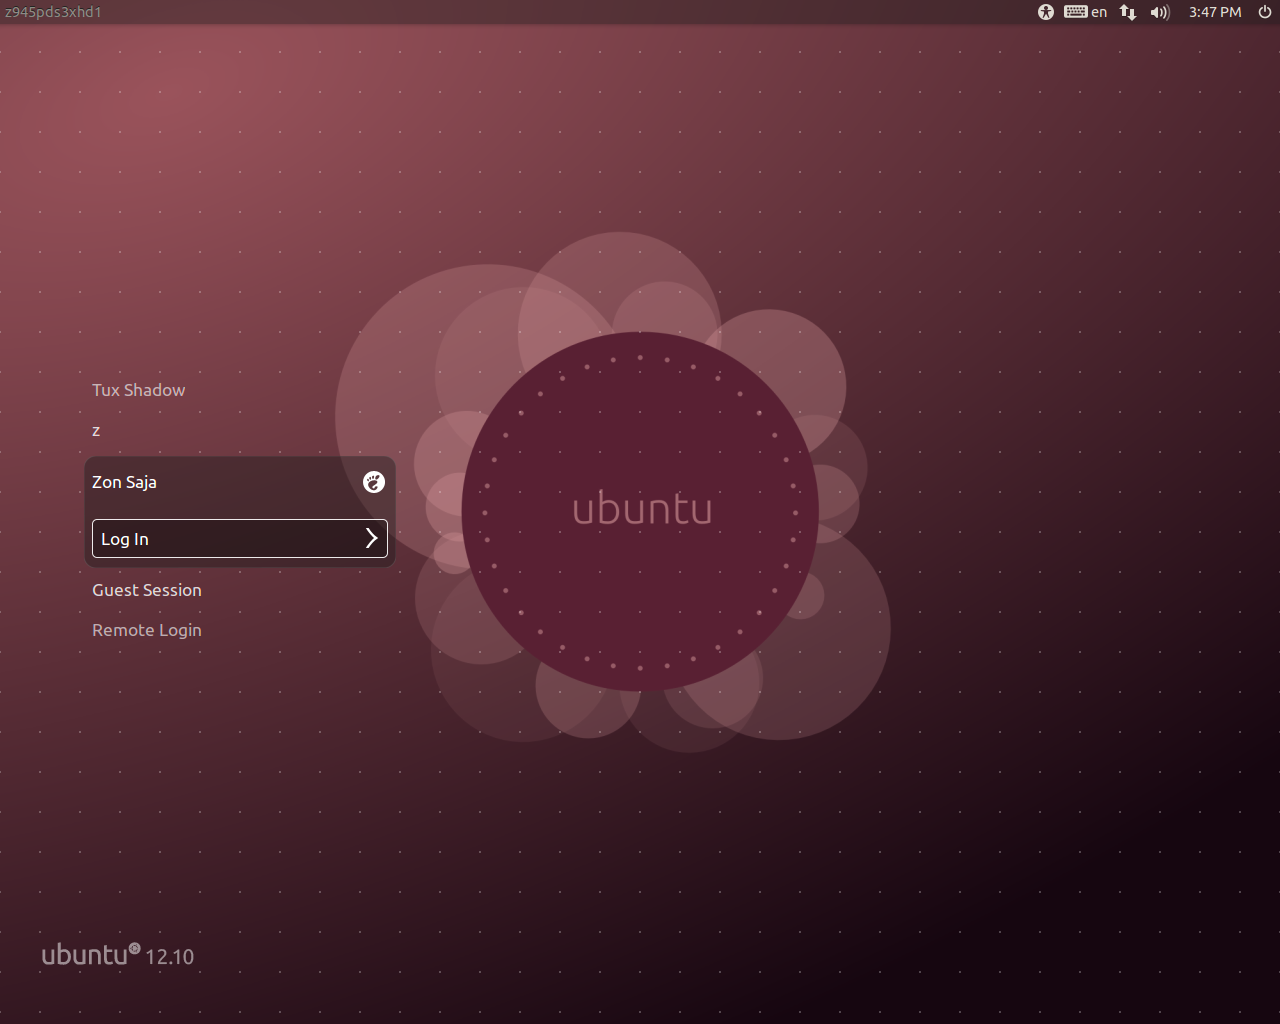 Ubuntu 12.04 Windows 7 Theme Wallpapers And Logon  - ubuntu windows 7 style wallpapers